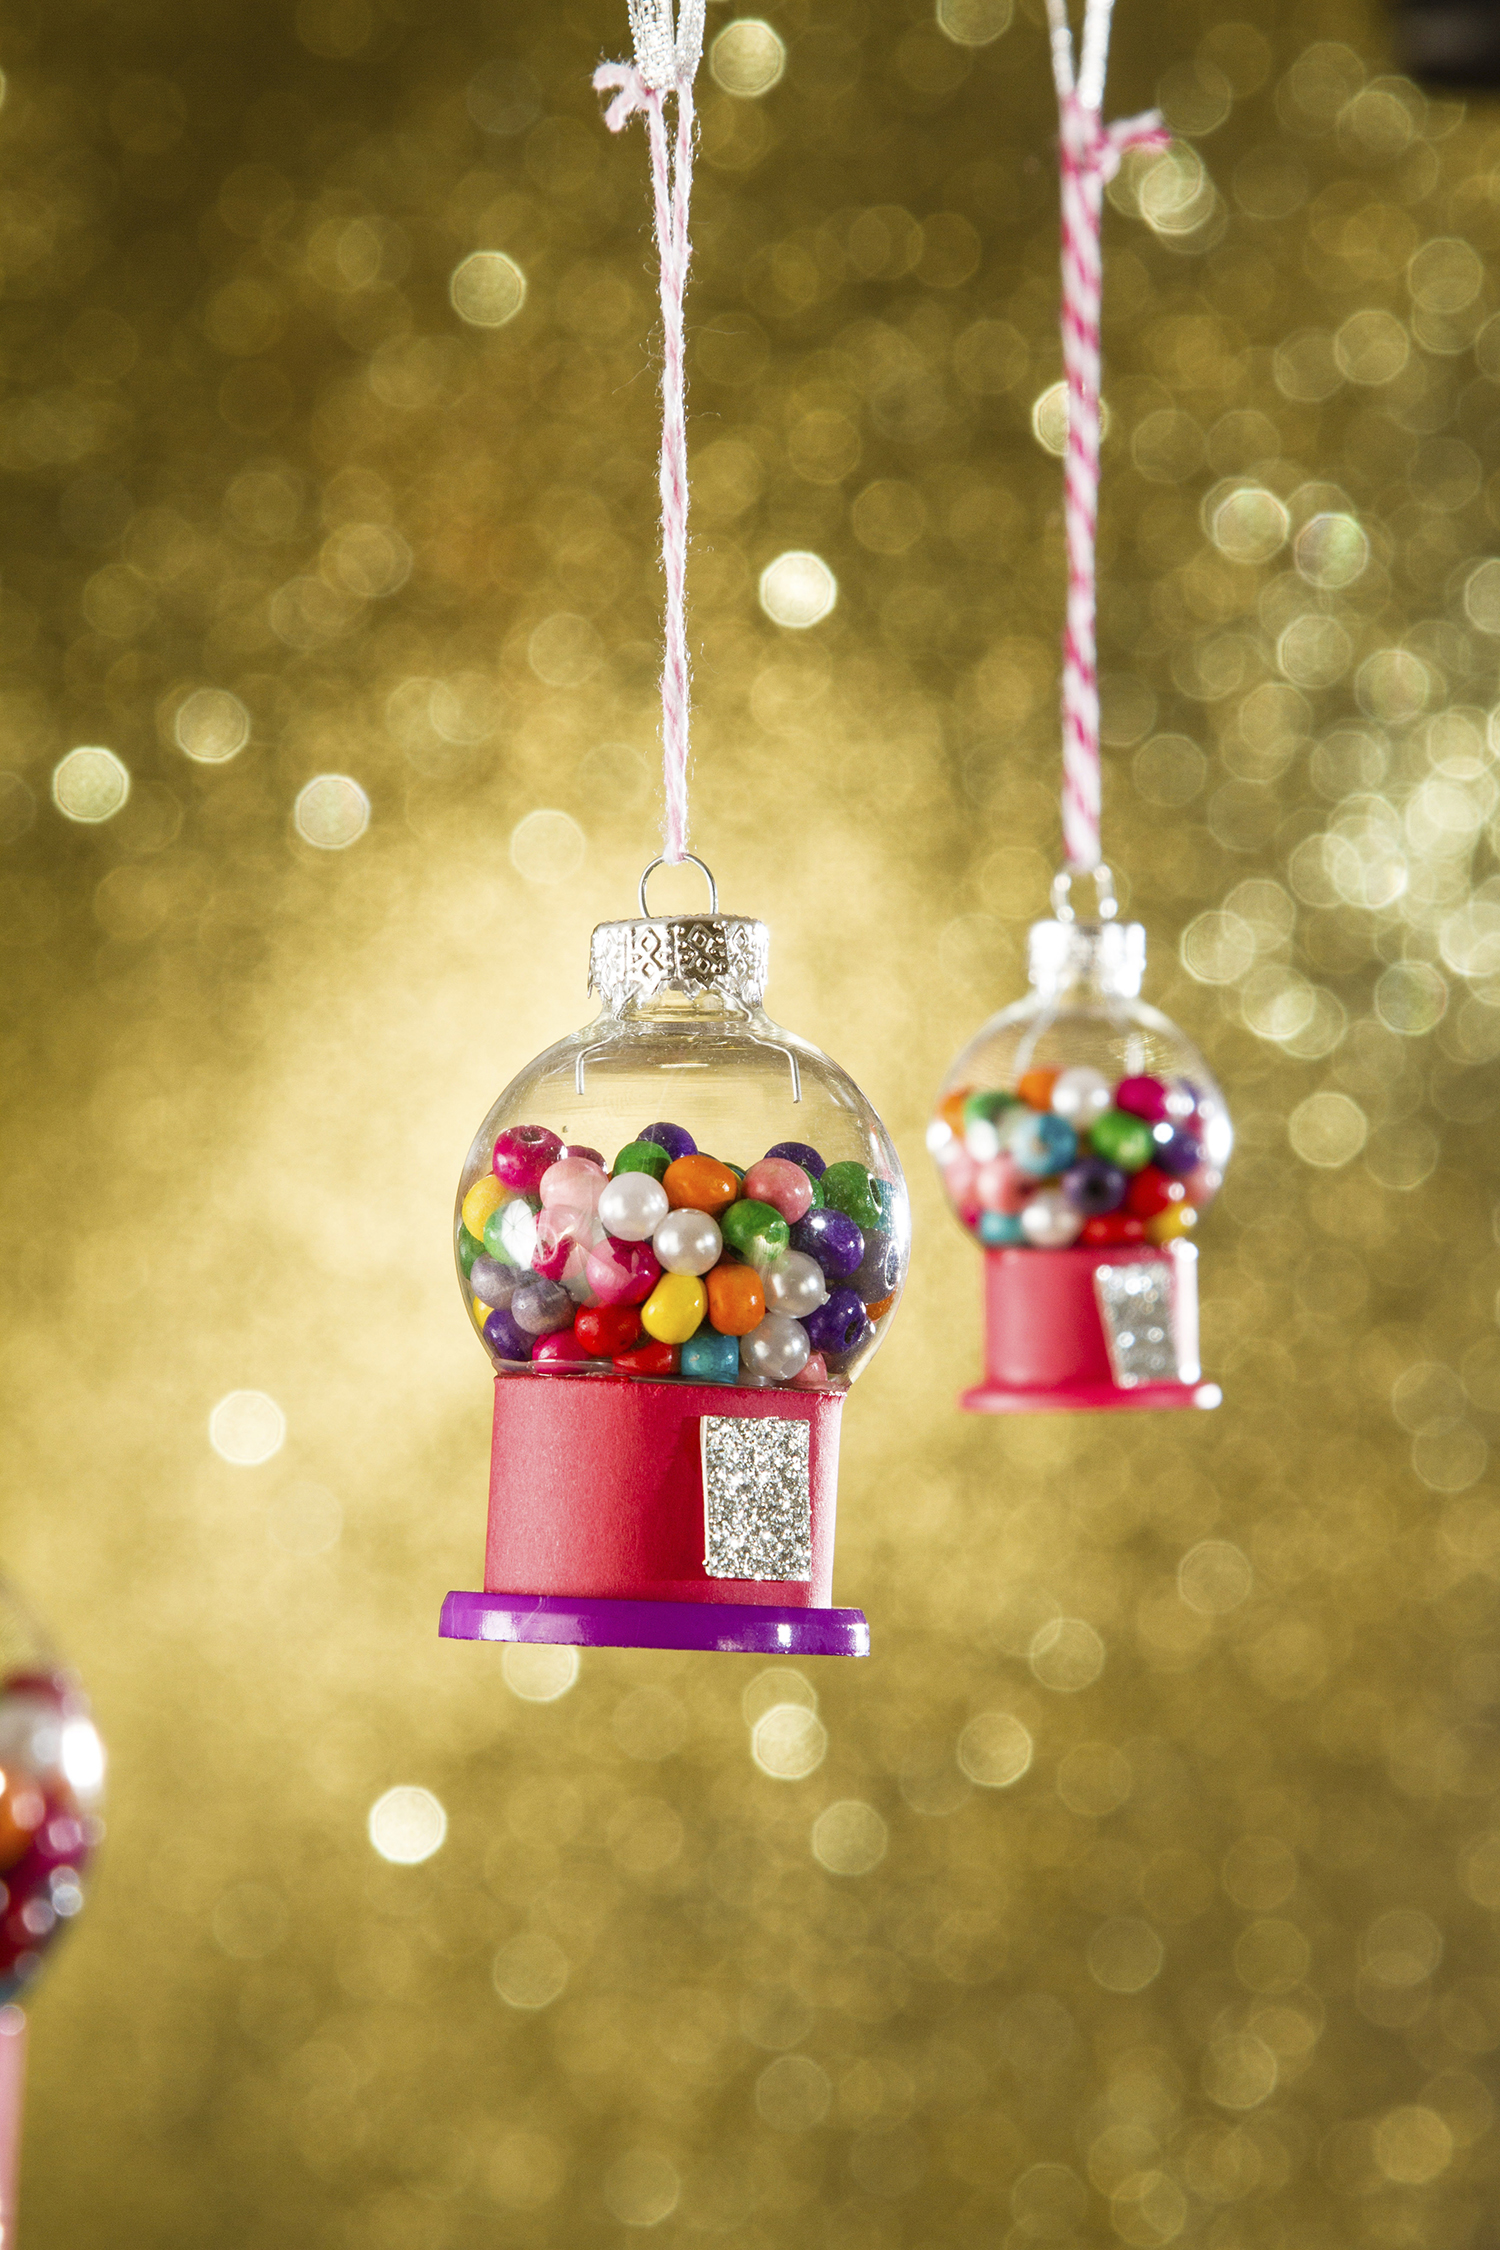 Diy Christmas Ornament Craft Ideas For Kids From Family